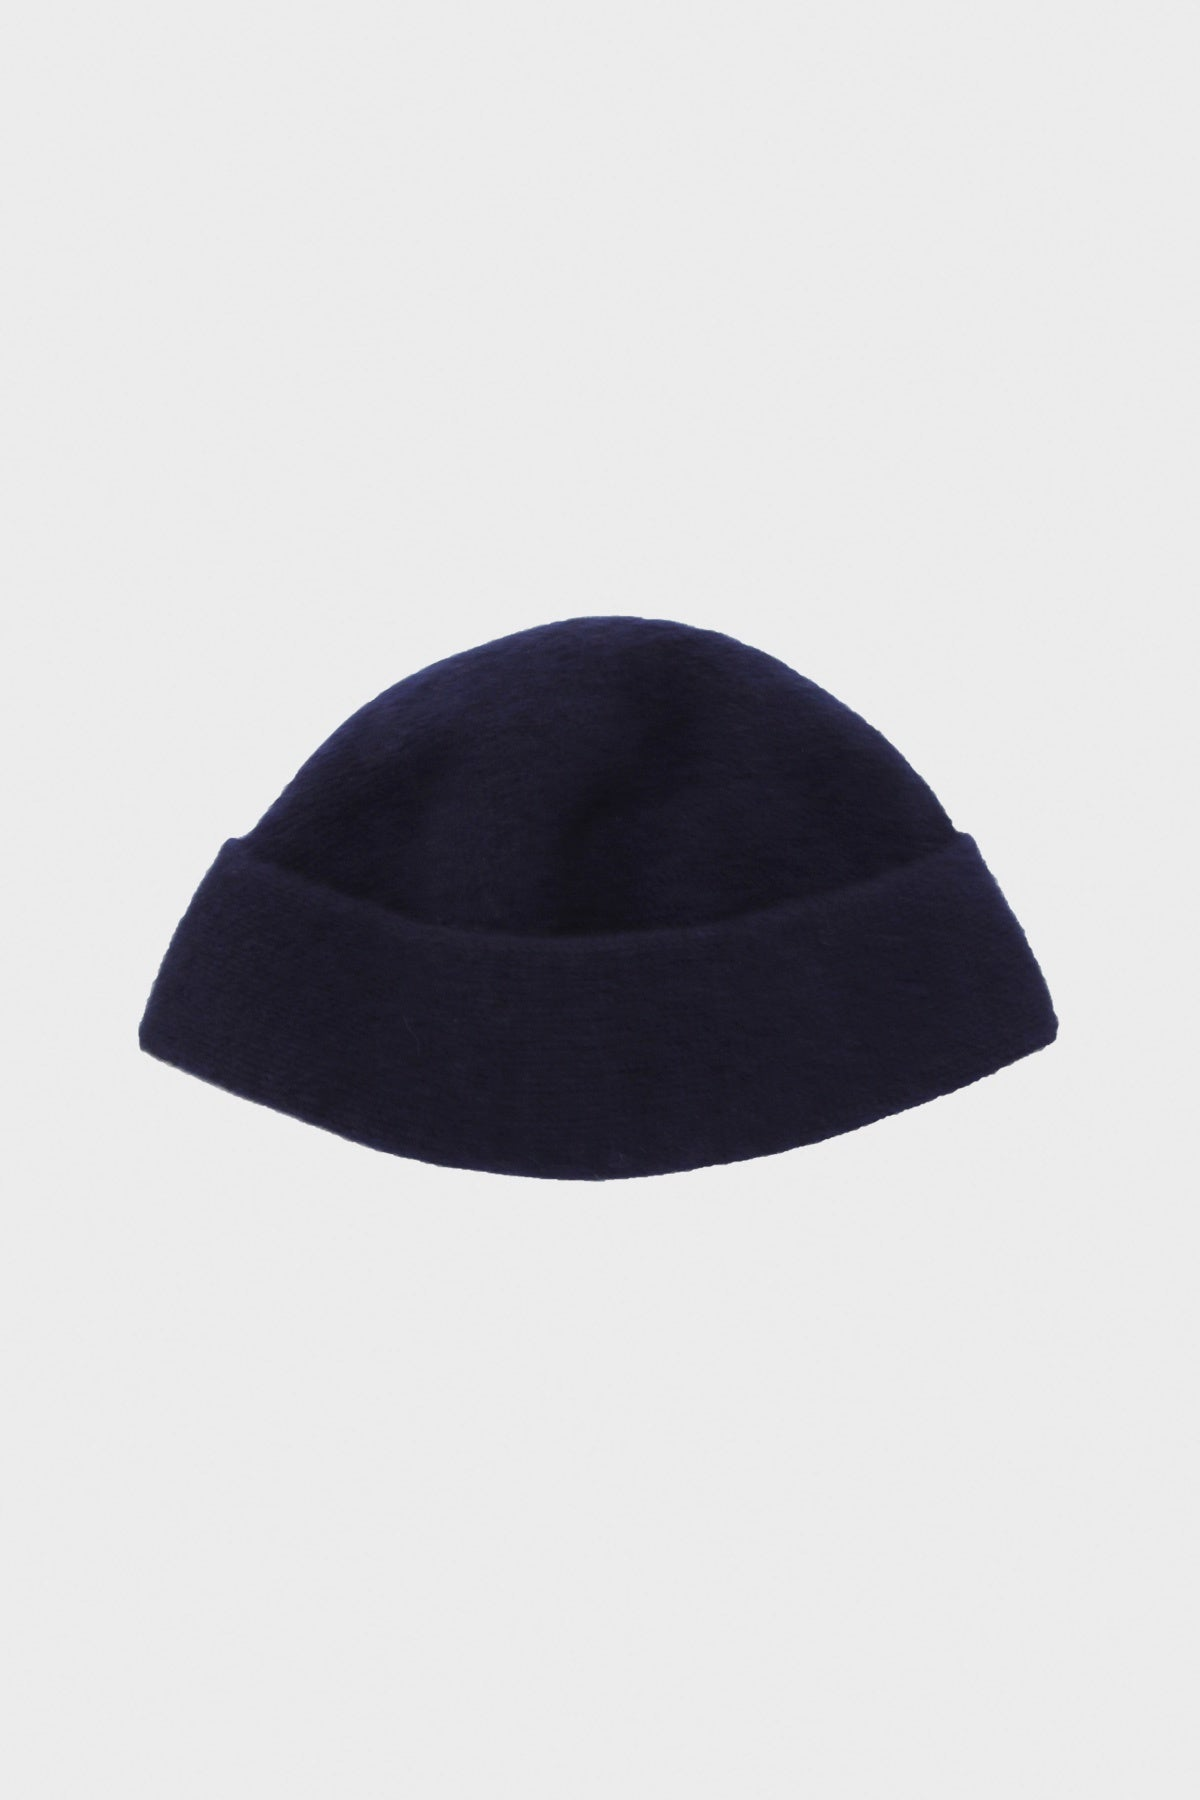 Cableami - Cashmere Beanie - Navy - Canoe Club